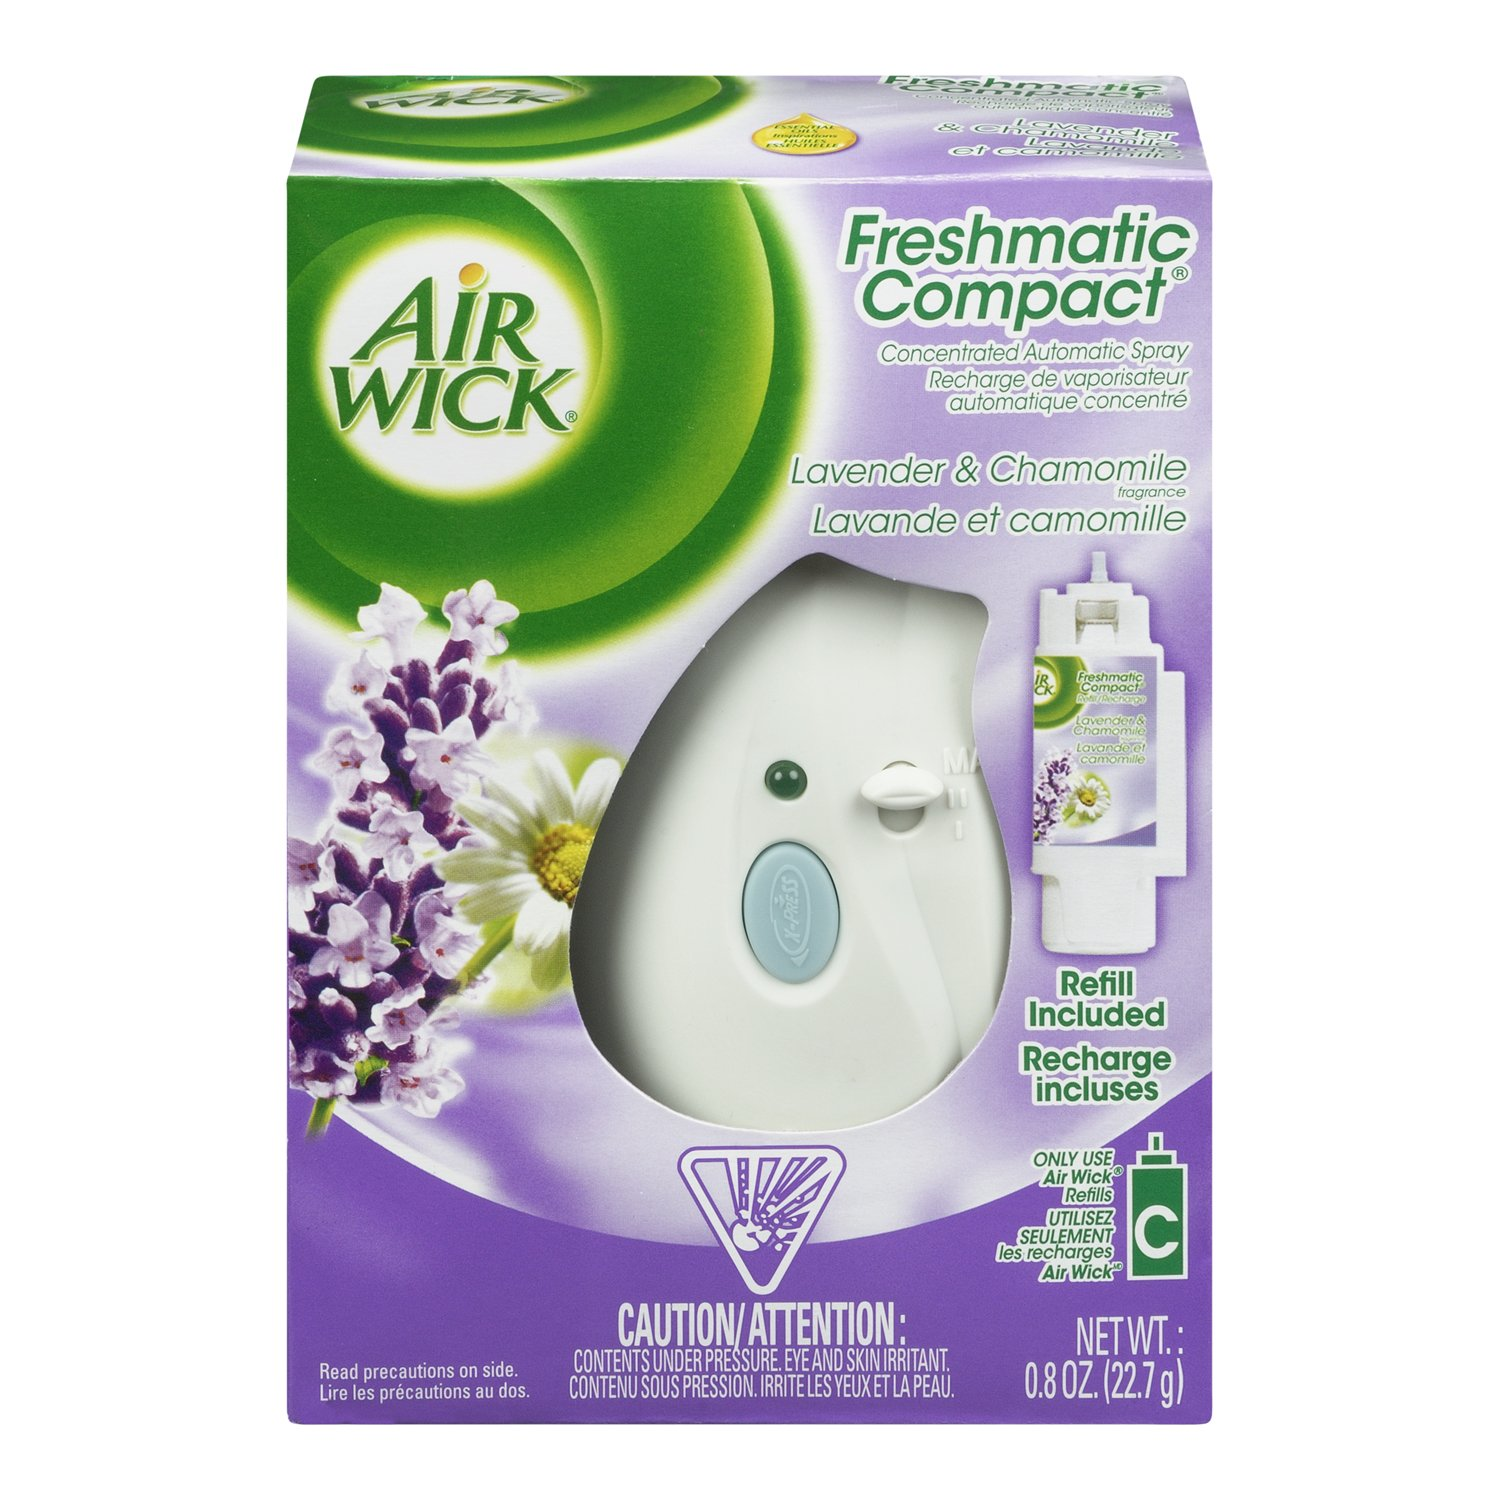 Air wick freshmatic compact refill coupons